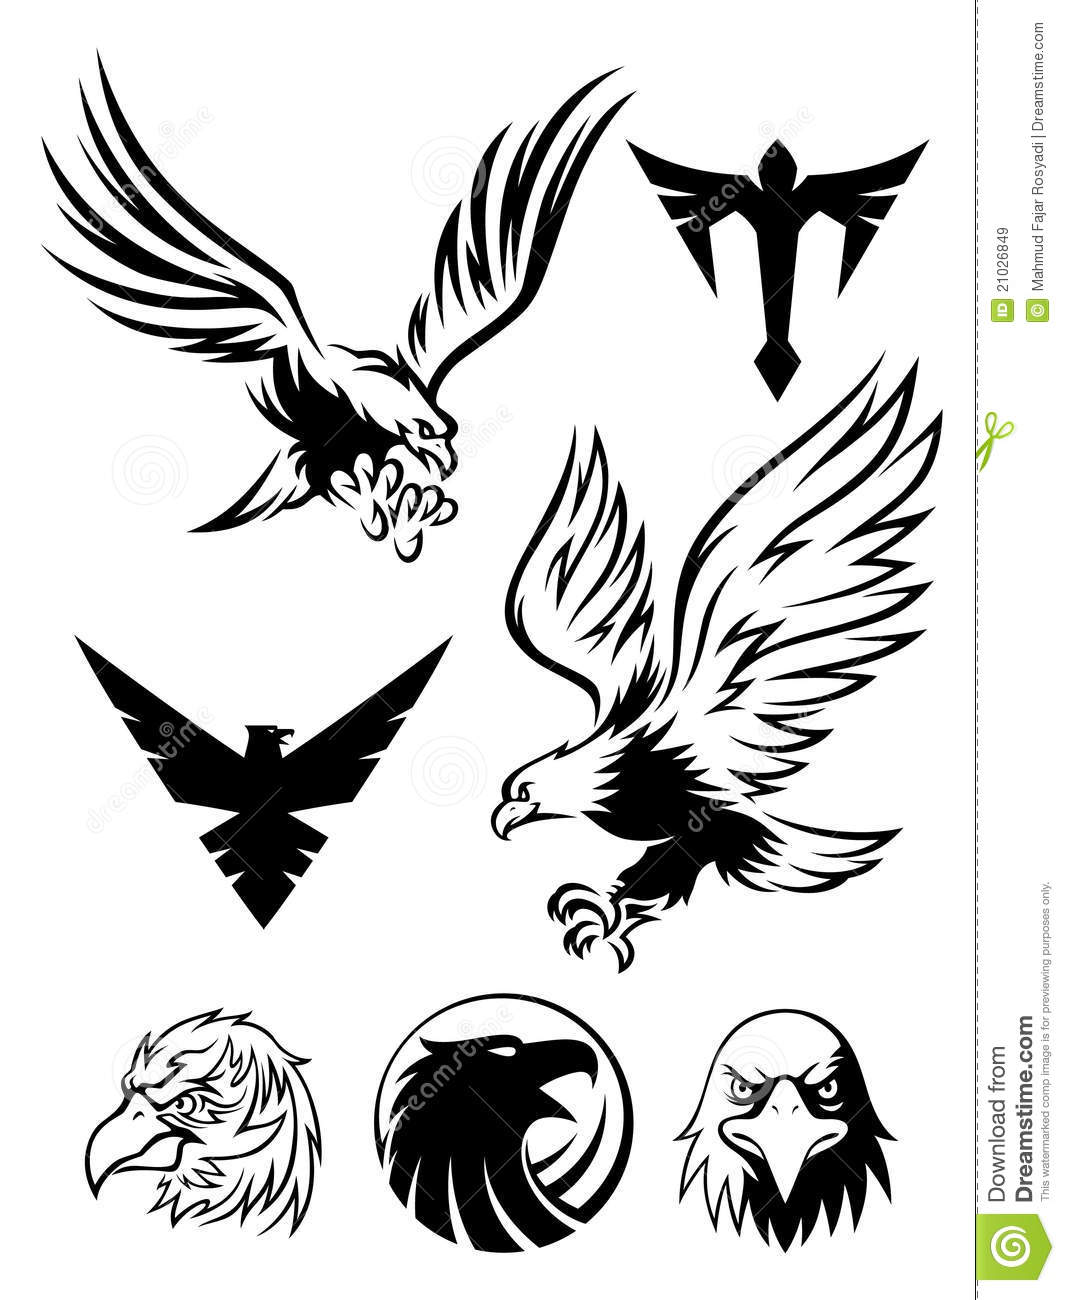 Eagle Symbol Stock Vector Illustration Of Strength Object 21026849